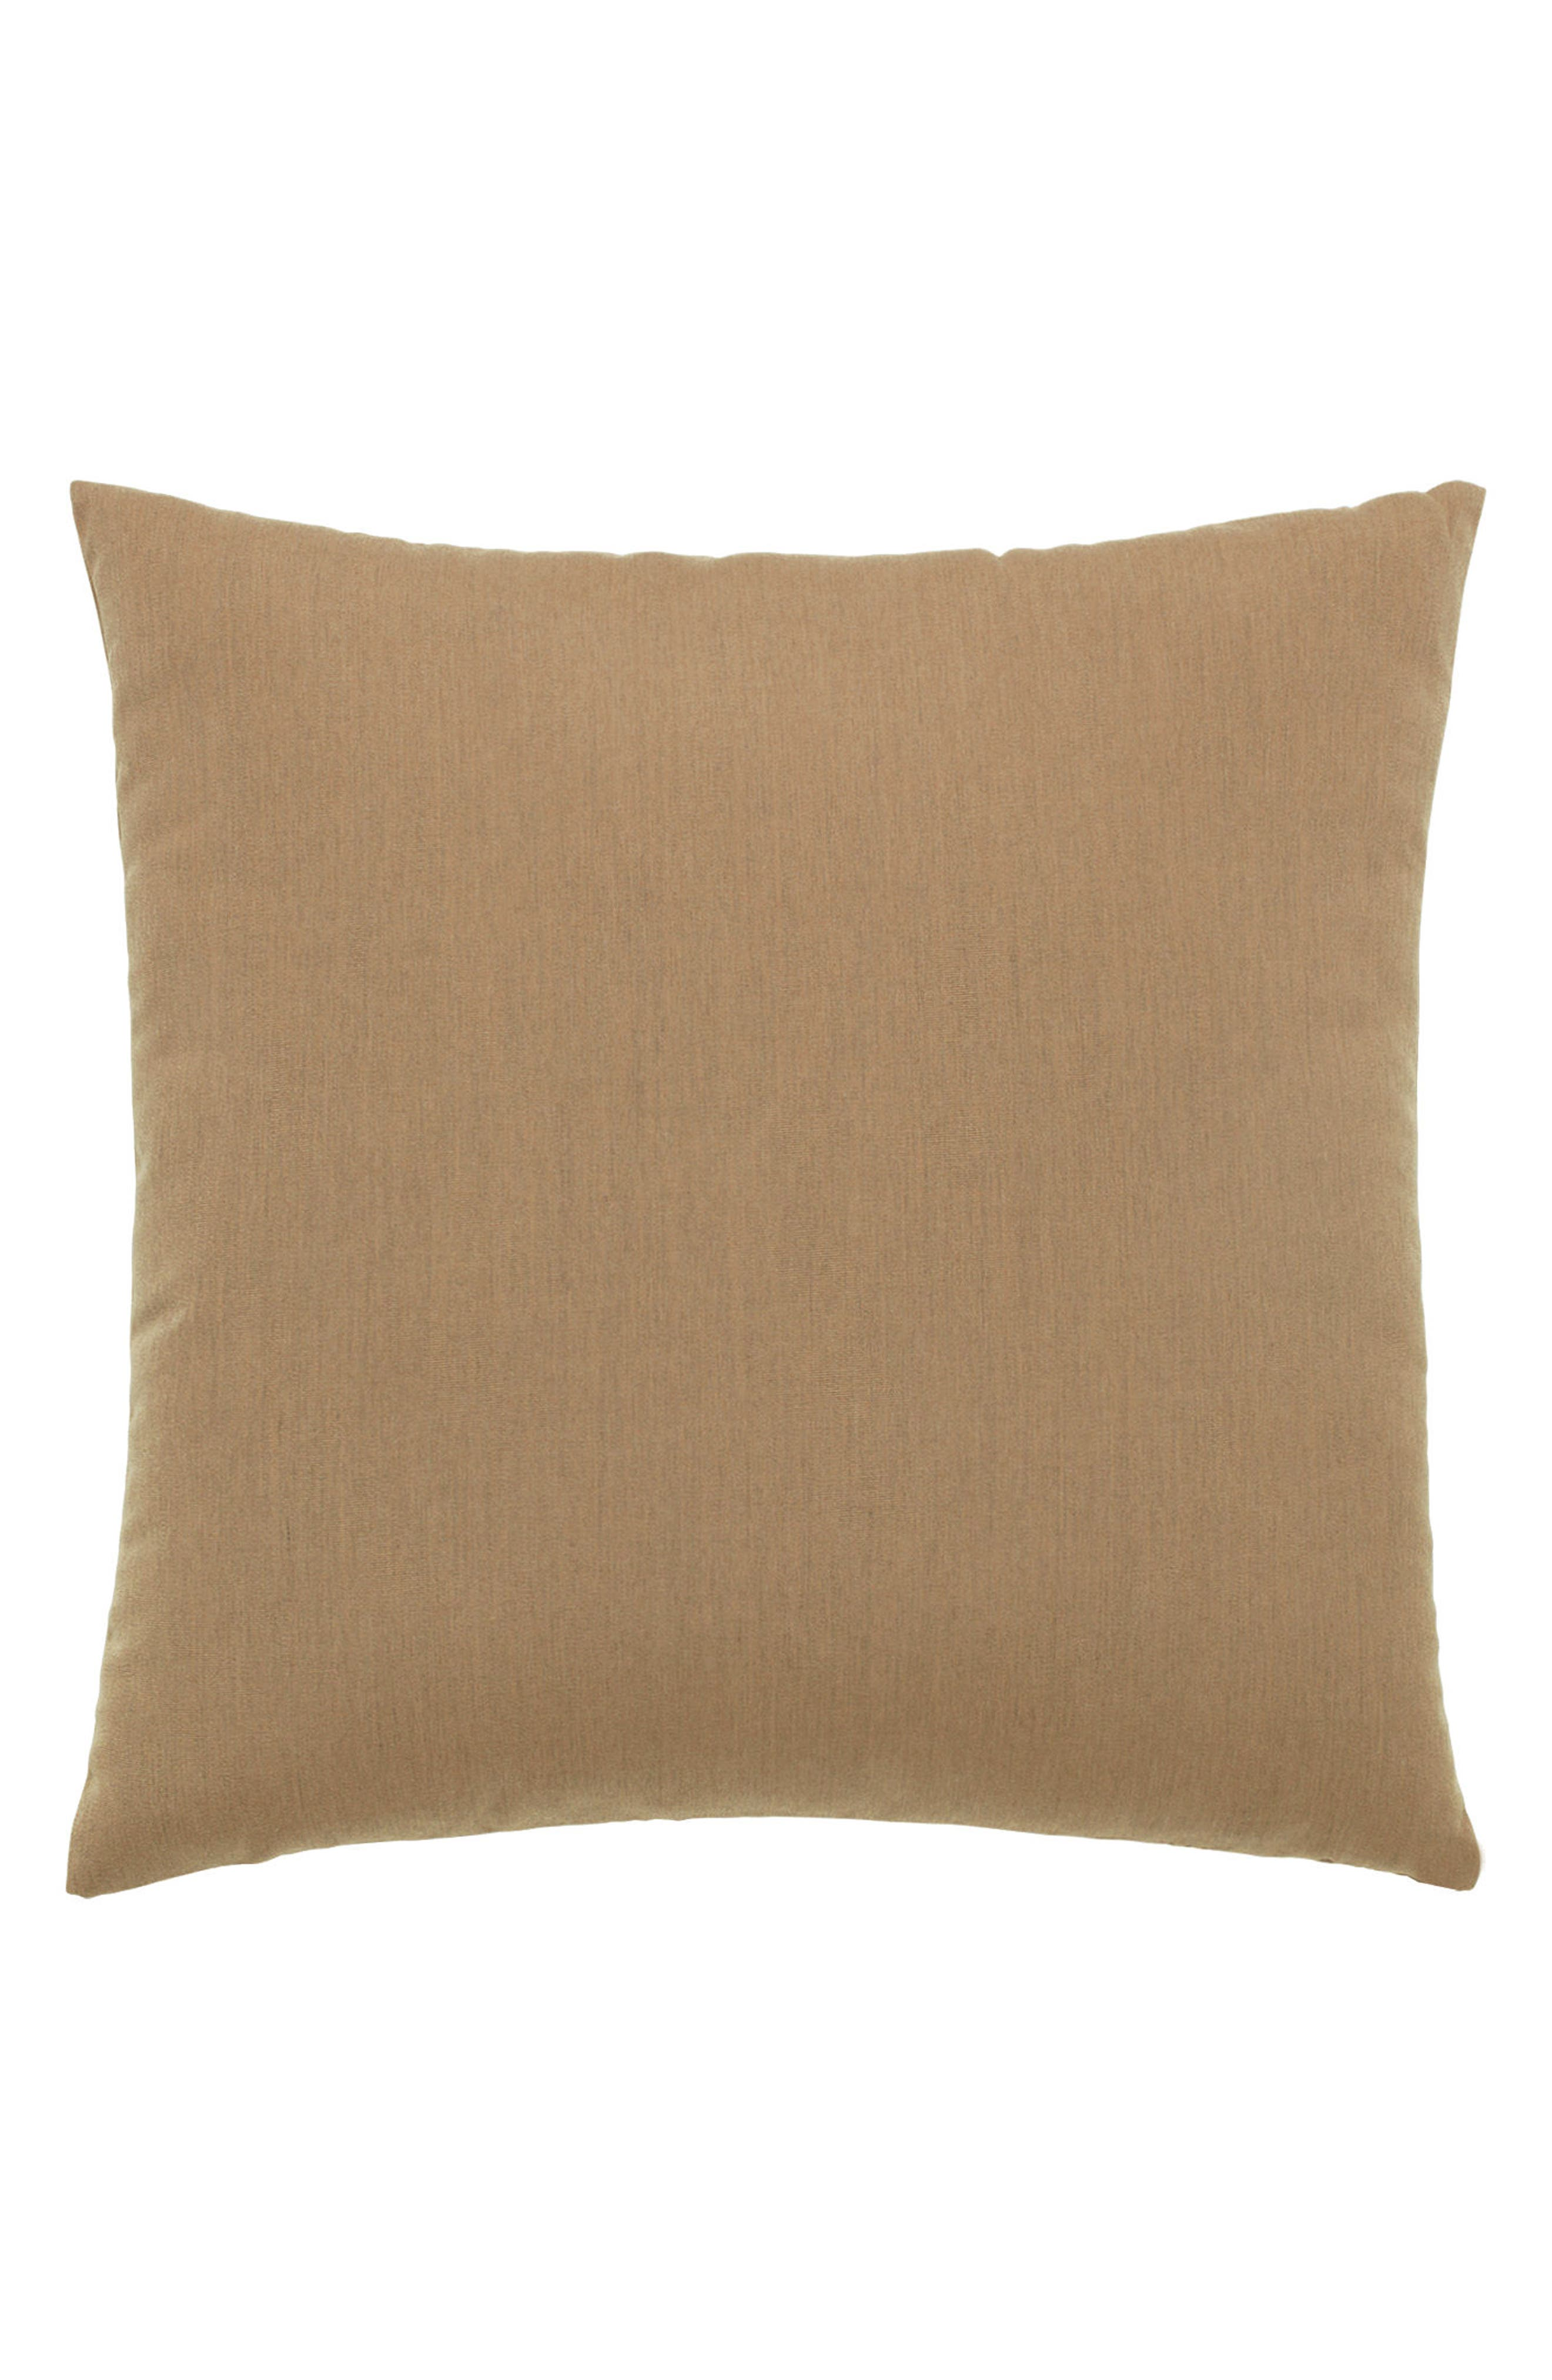 Smoke Basket Weave Indoor/Outdoor Accent Pillow,                             Alternate thumbnail 3, color,                             Brown/ Grey